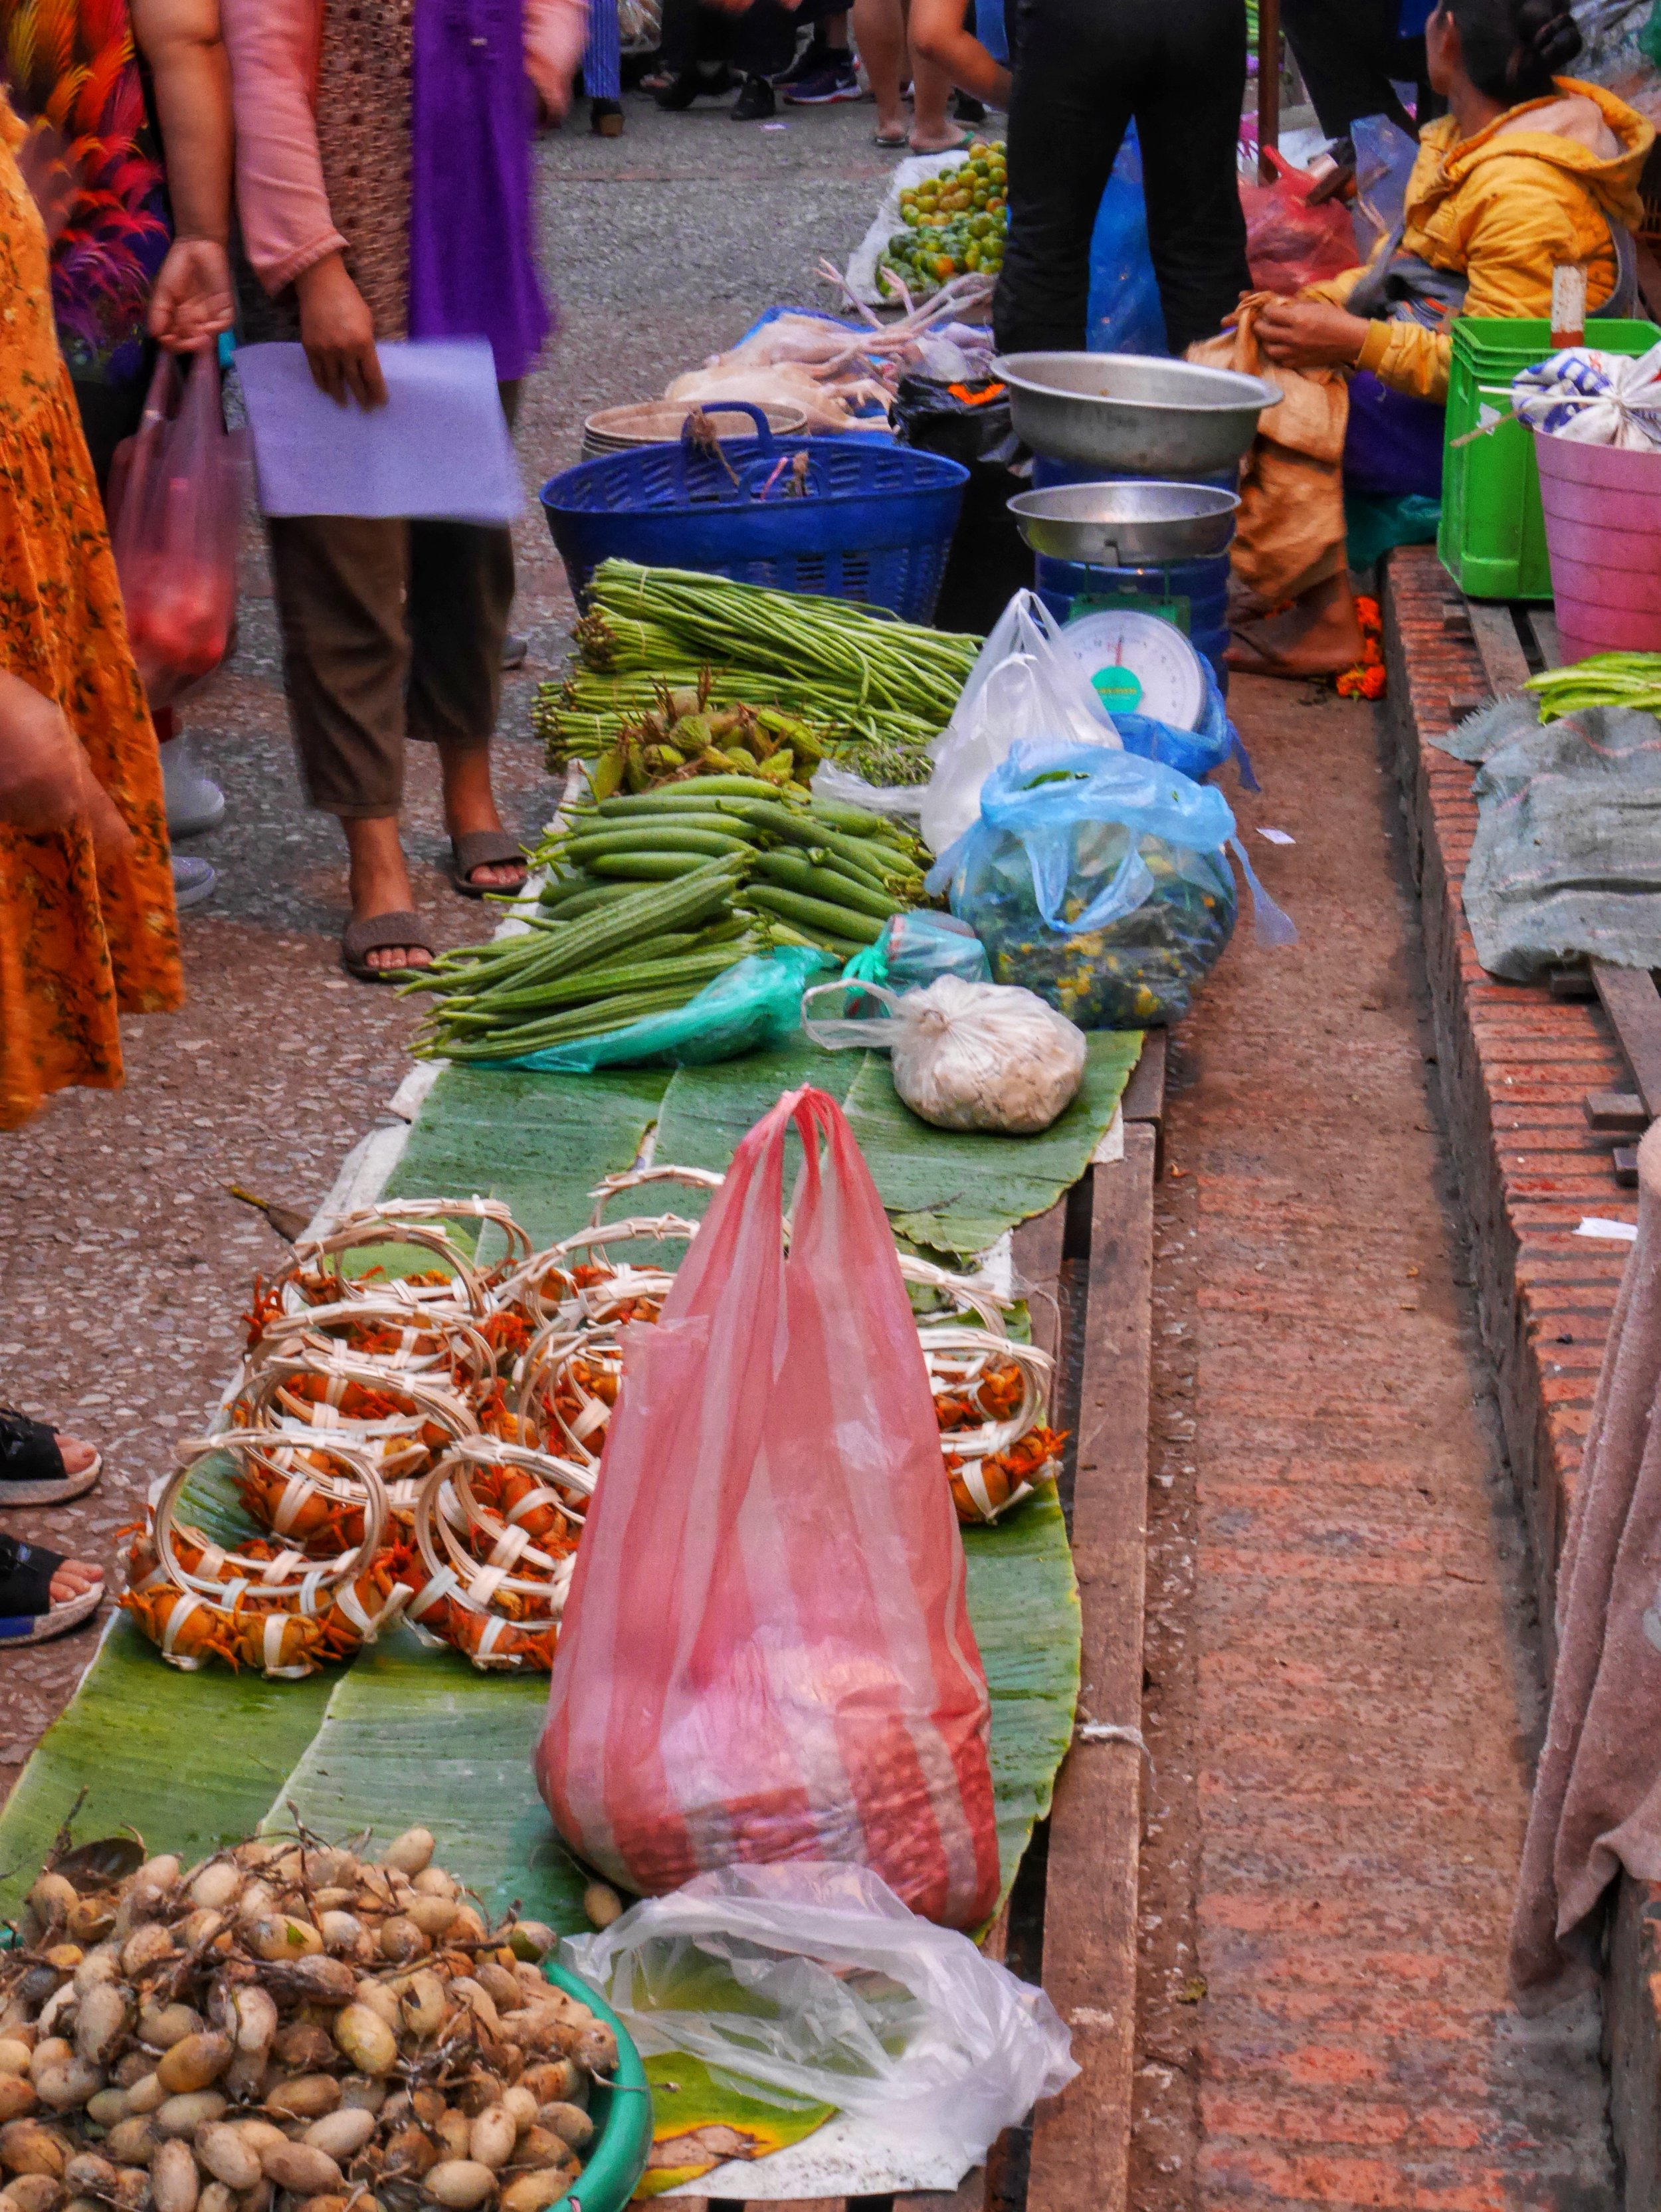 live crabs for sale along with various produce at Luang Prabang's Morning Market